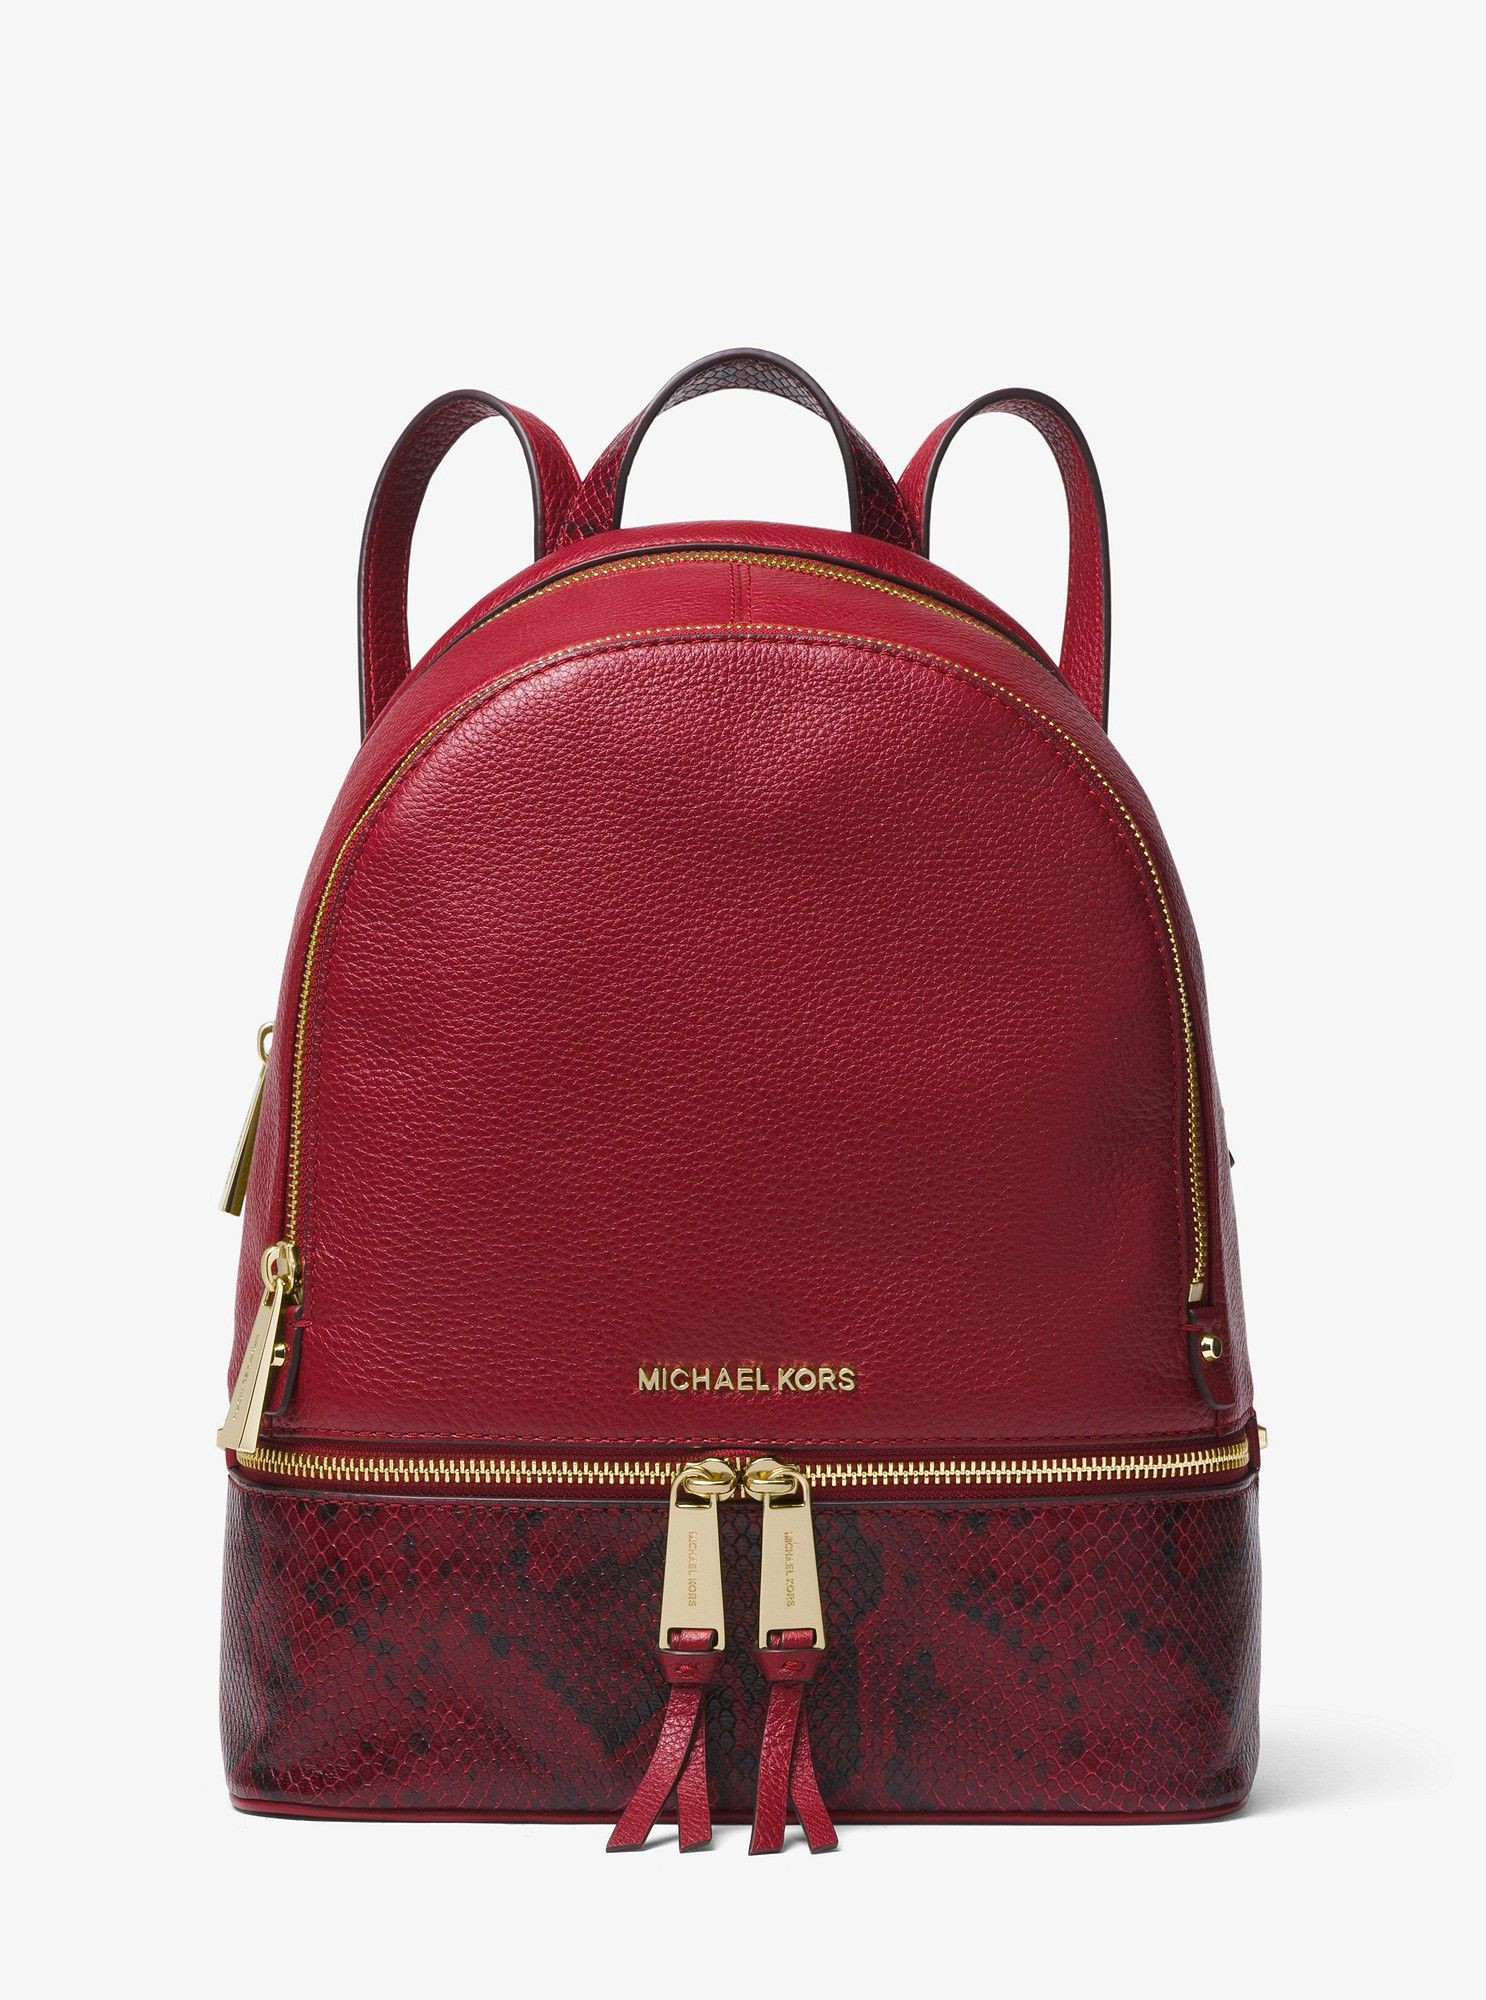 f690101f005a Michael Kors Rhea Medium Pebbled And Snake-Embossed Leather Backpack -  Maroon